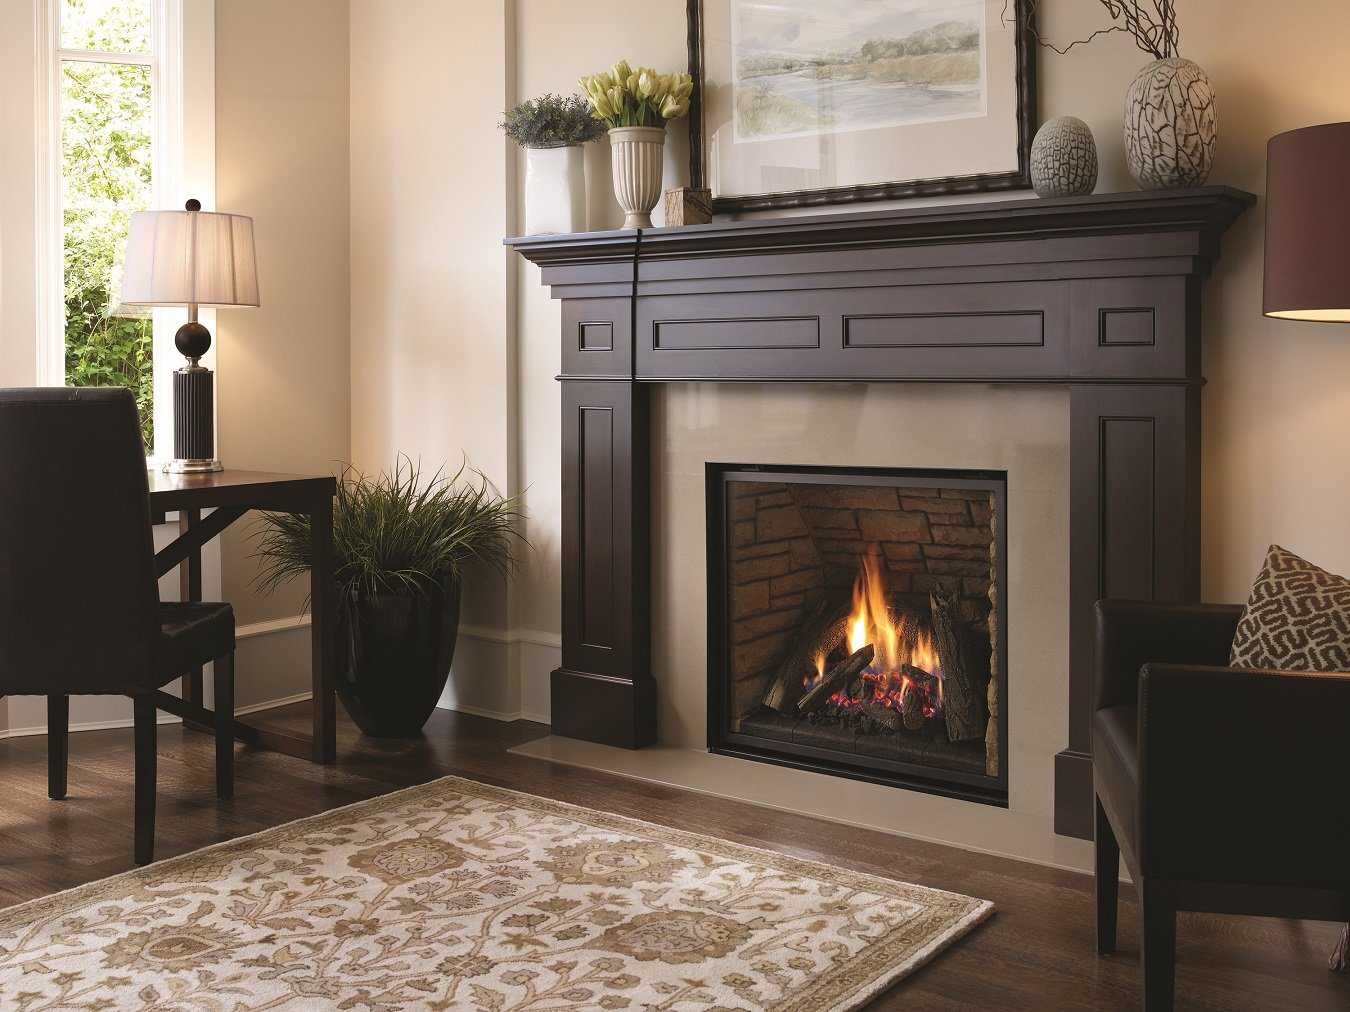 Aspen Green Gas Works Sells Gas Fireplaces and Gas Fireplace Inserts from Regency Fireplaces For Fairfax